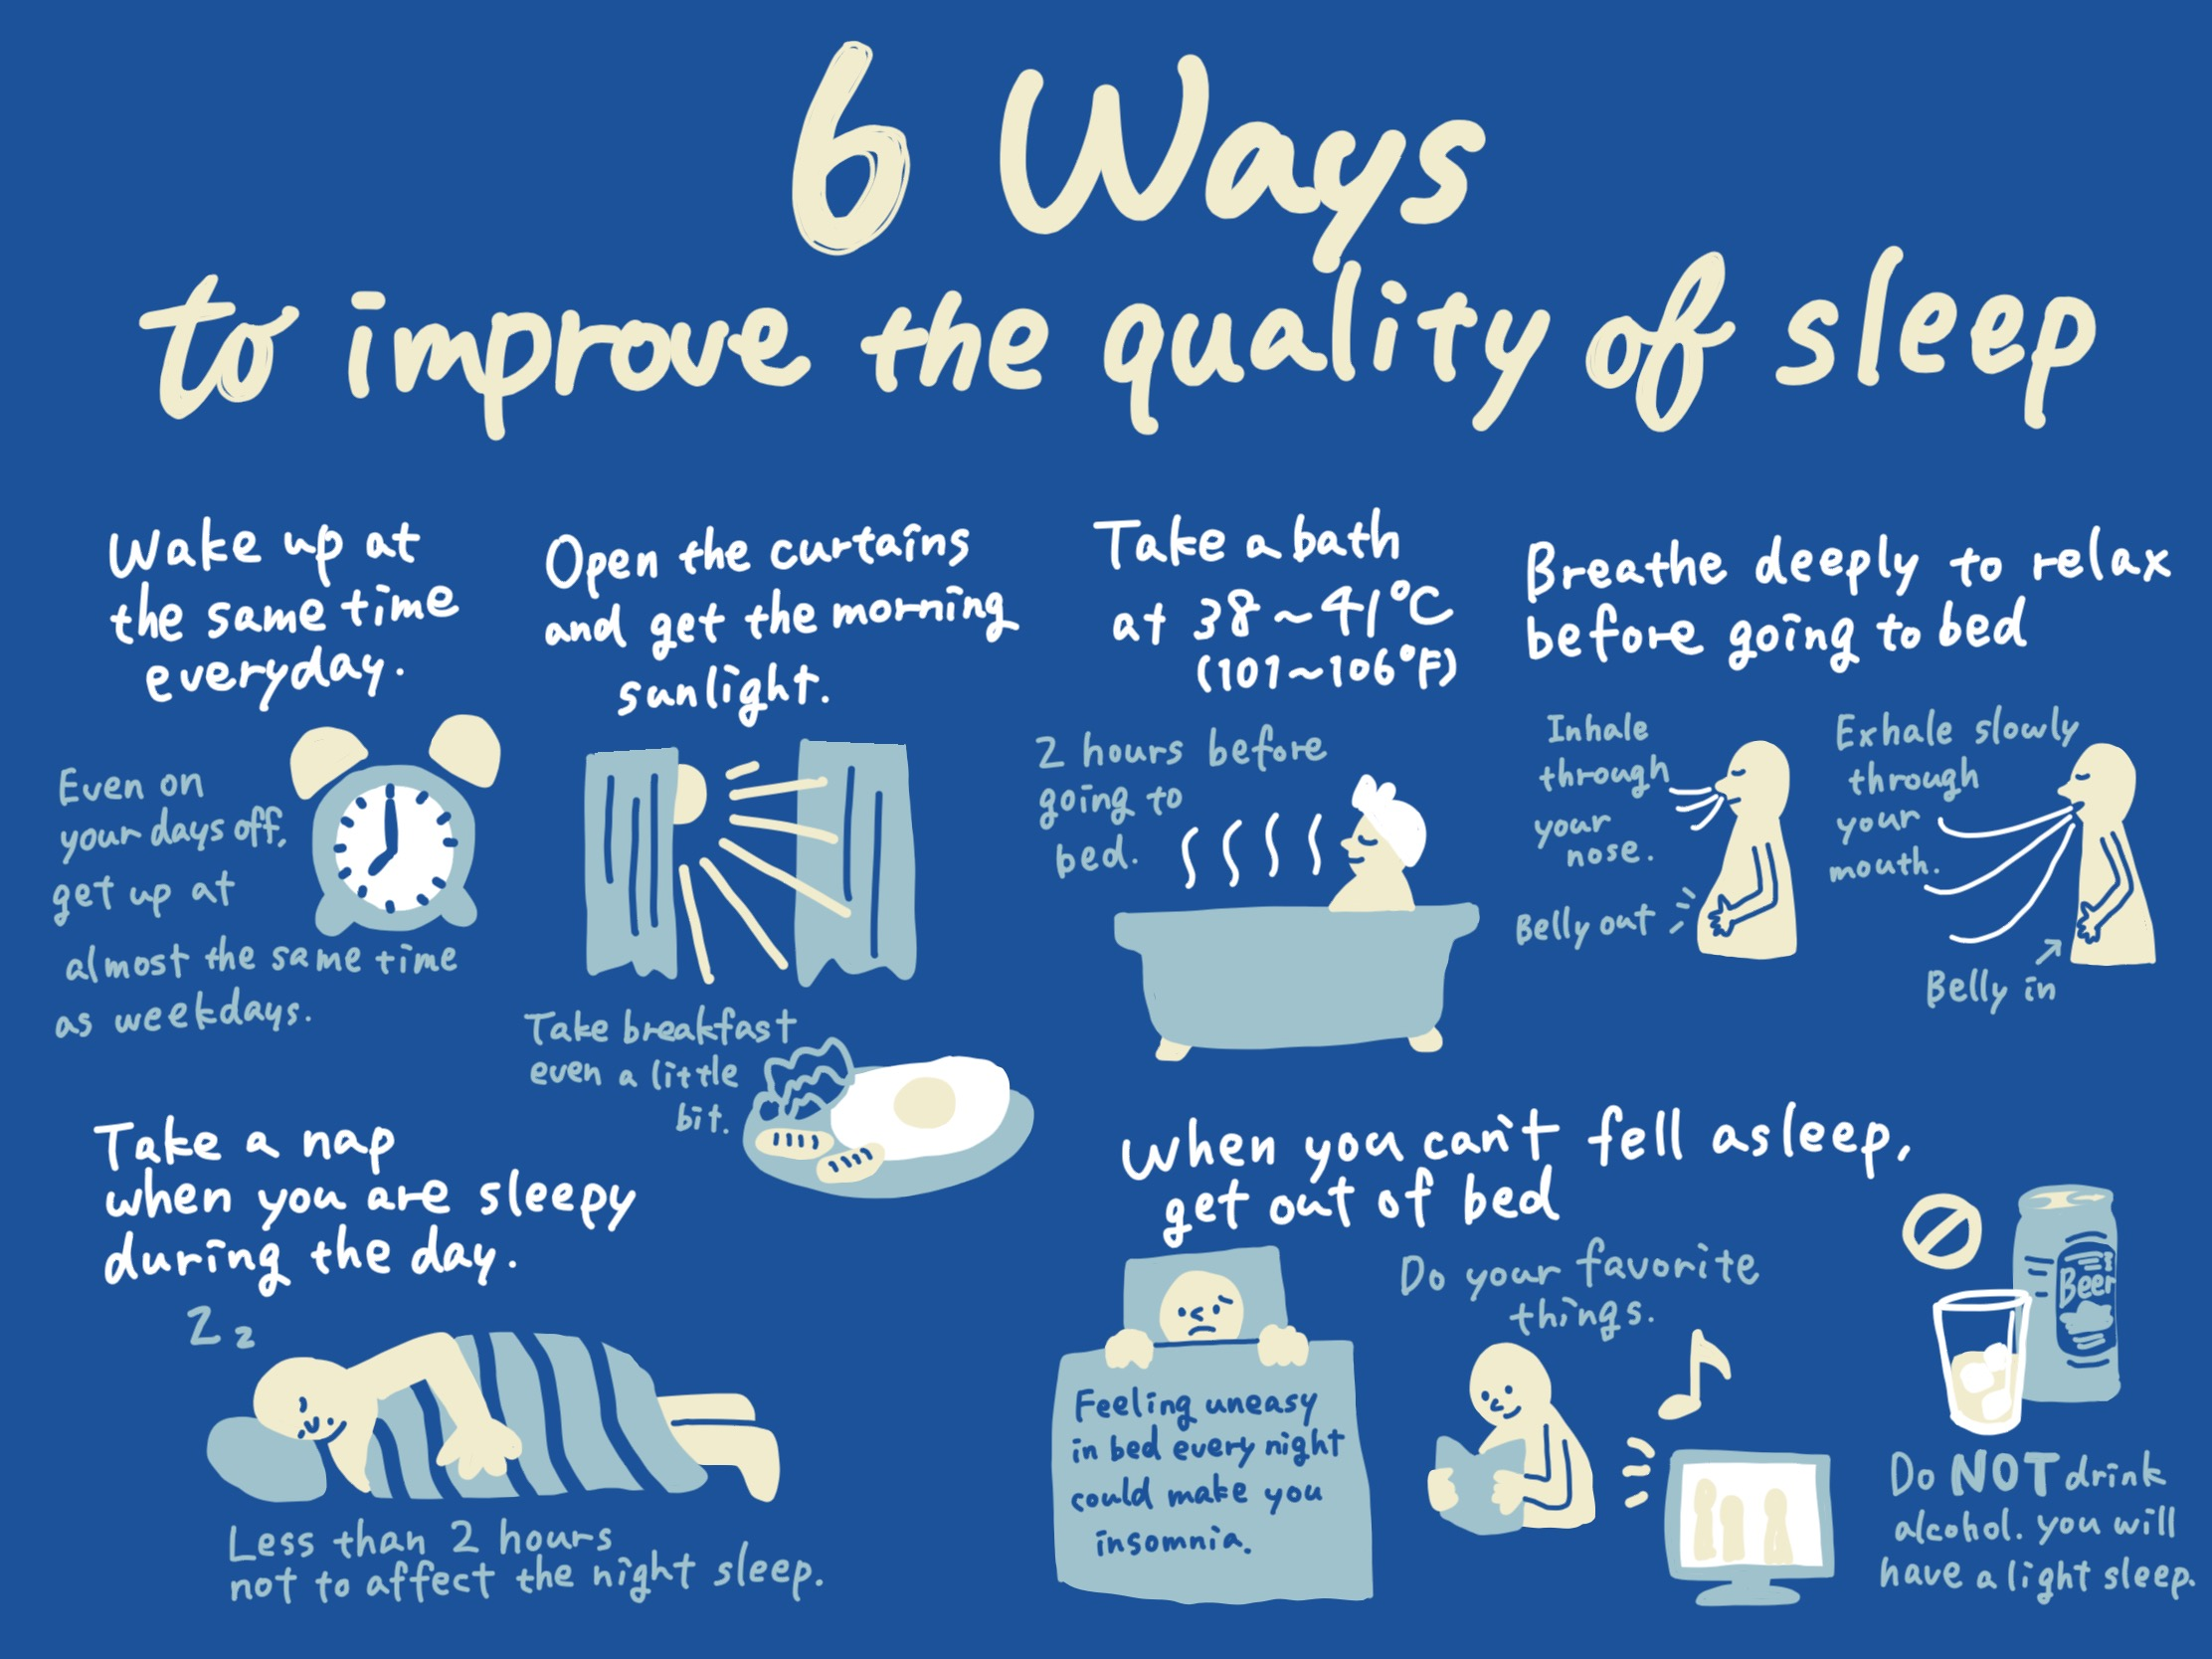 6 ways to improve the quality of sleep